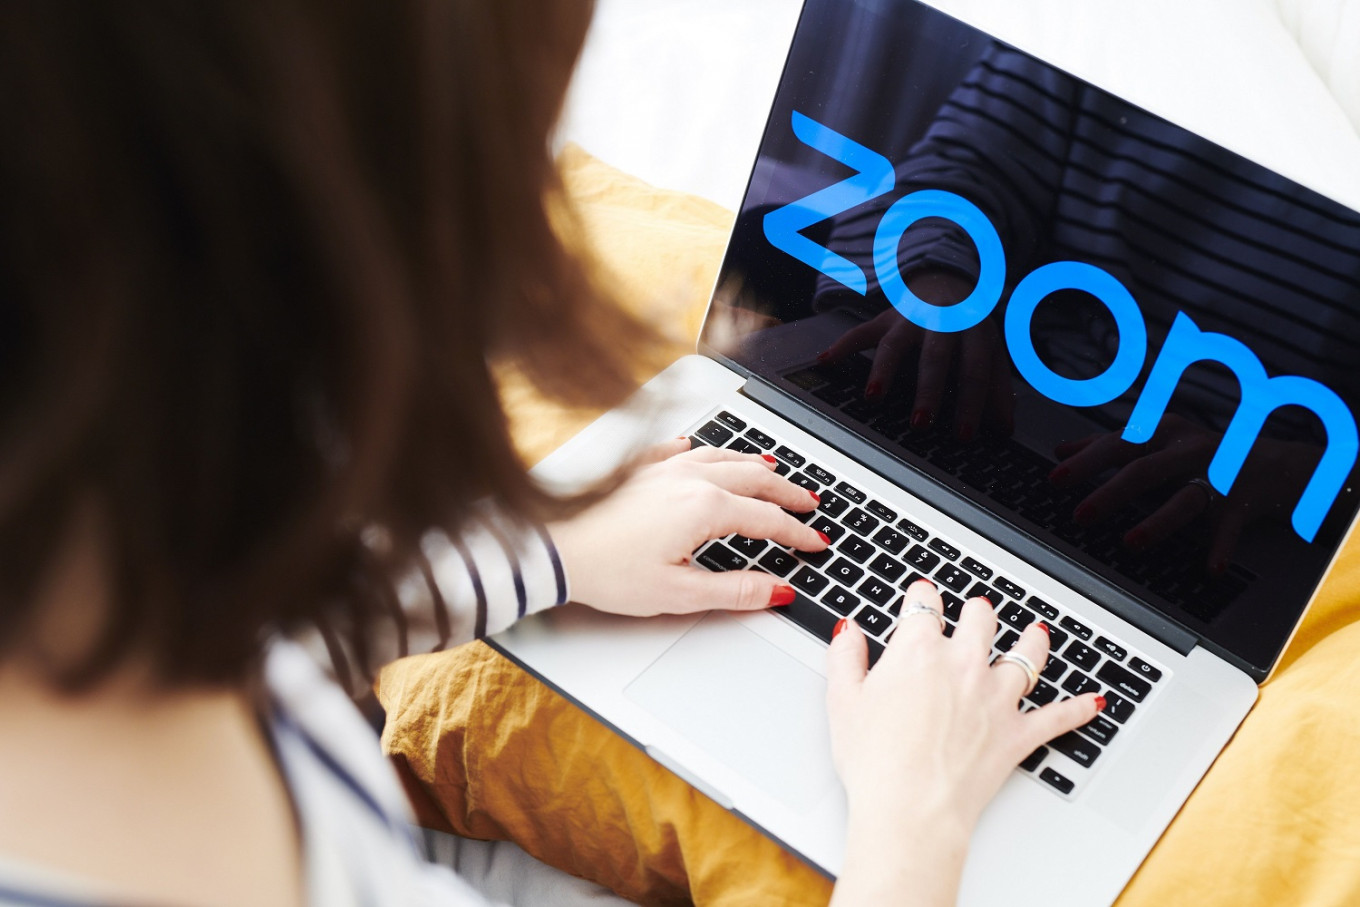 Zoom offers new call controls for paying clients in privacy push